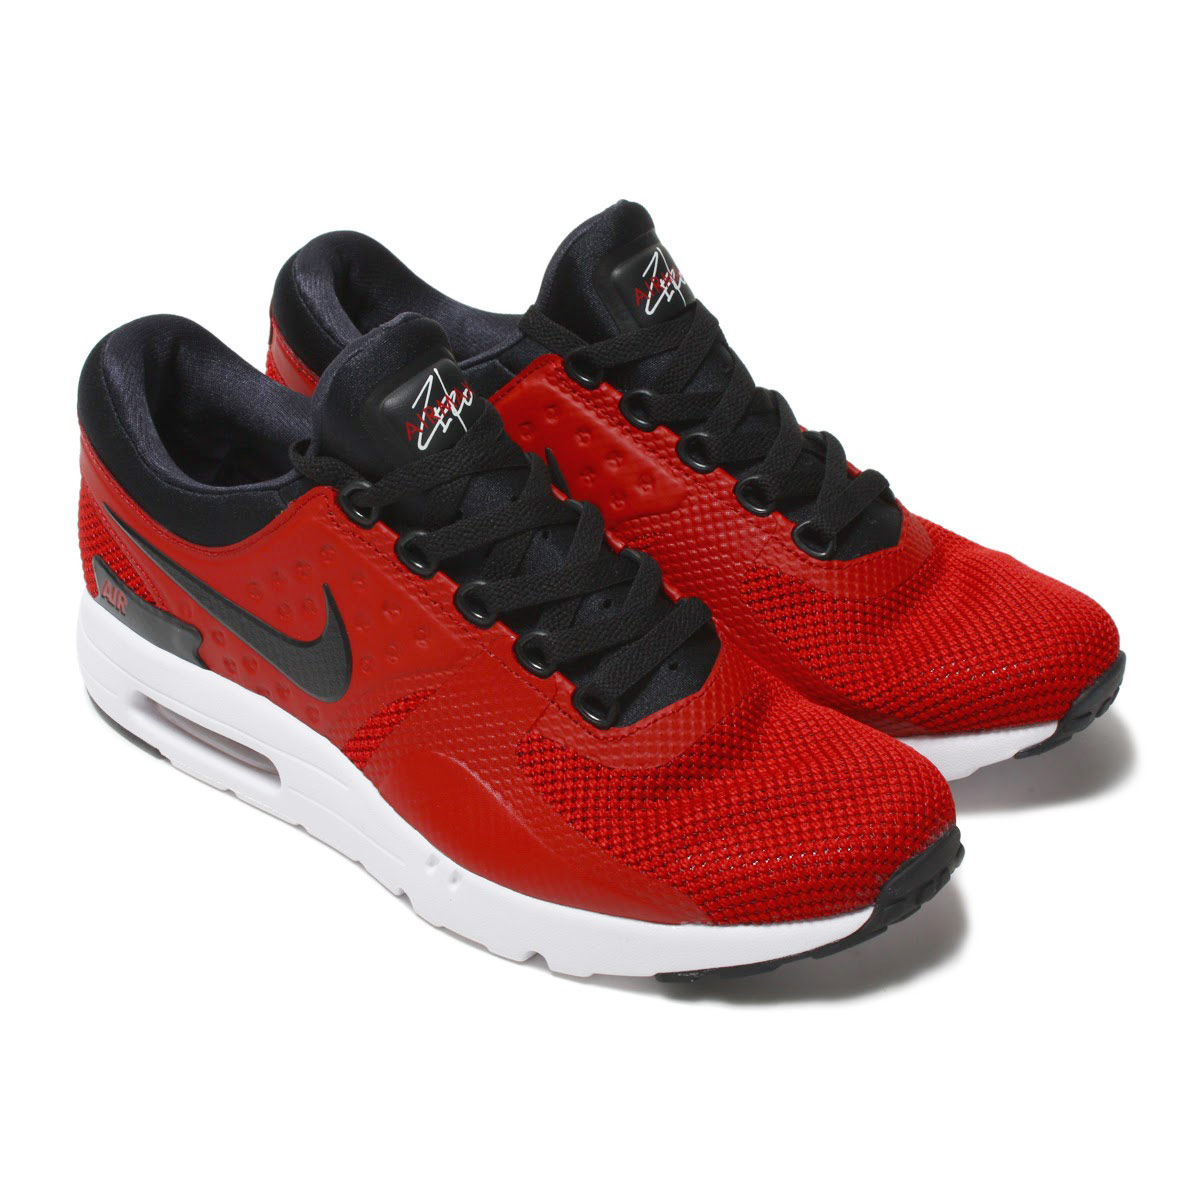 cheaper c6dd1 131a3 ... Black 100 NIKE AIR MAX ZERO ESSENTIAL (Kie Ney AMAX zero essential)  TOUGH REDBLACK-WHITE ...